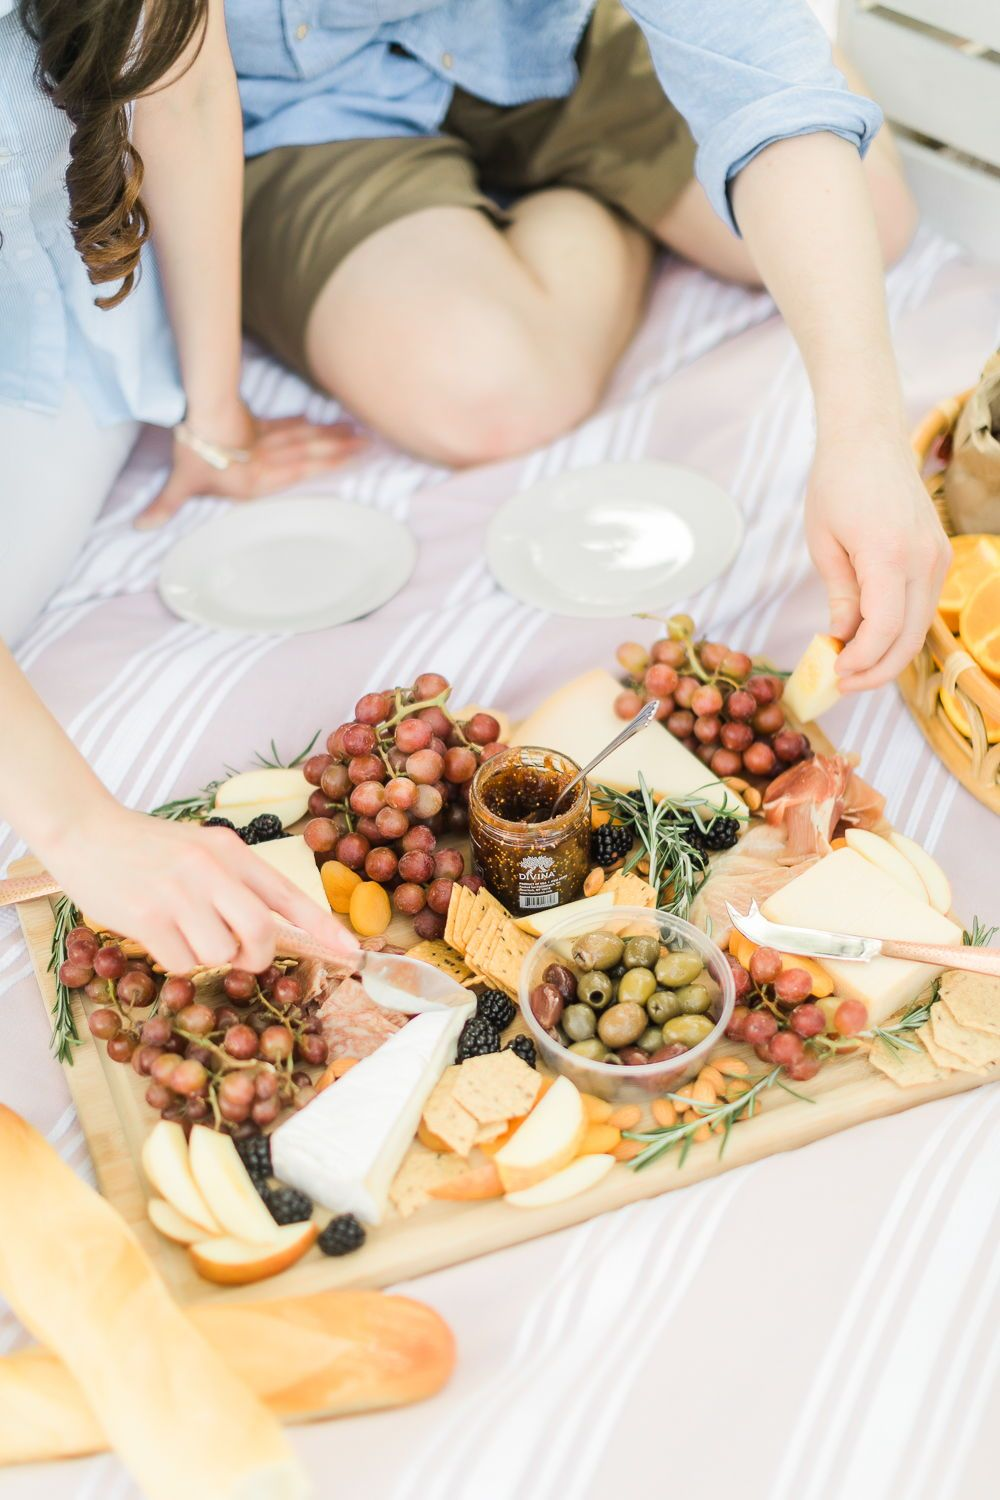 The Perfect Picnic Date: Romantic Summer Picnic Ideas for Him | Picnic date  food, Picnic foods, Charcuterie picnic